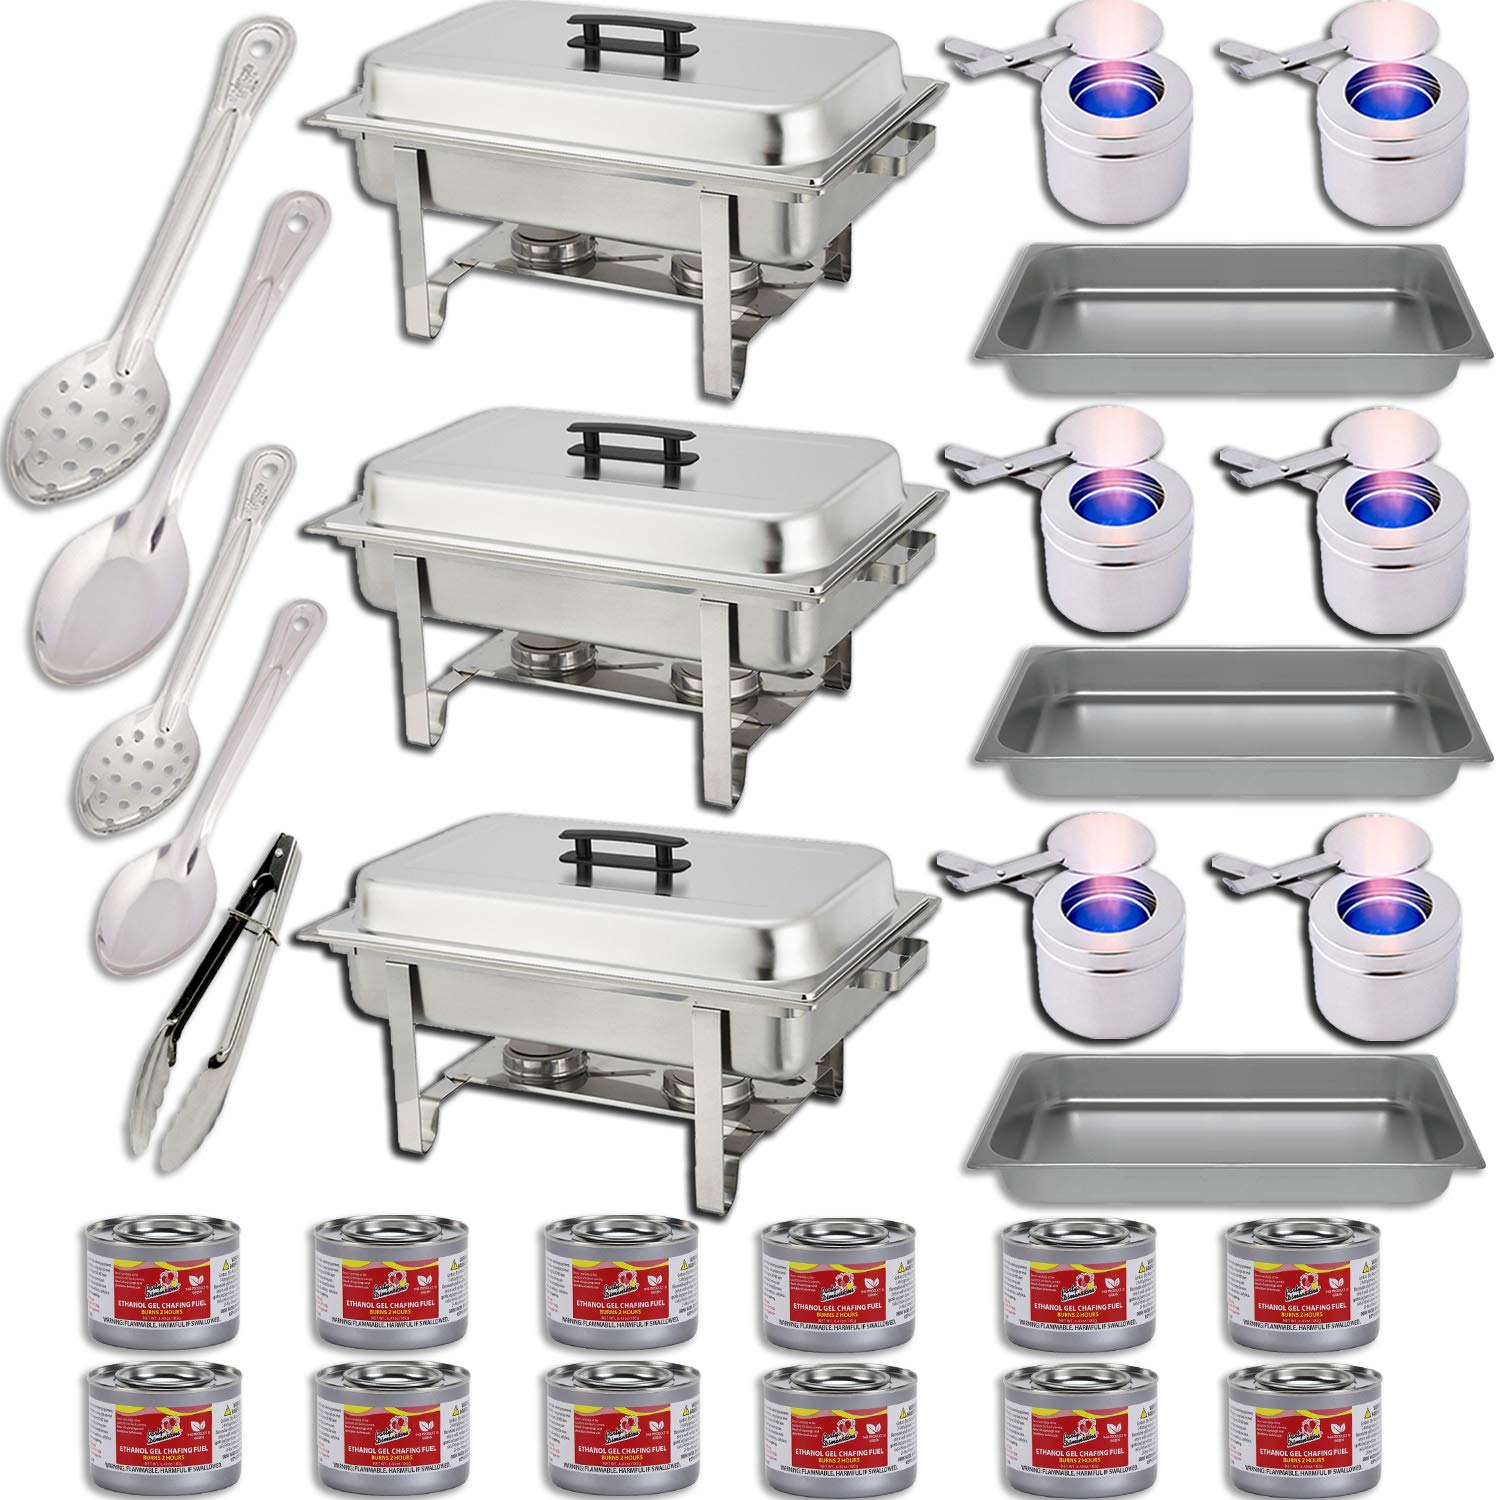 Chafing Dish Buffet Set w/Fuel - Water Pans + Food Pans 8qt + Frames + Lids + Fuel Holders + 12 Fuel Cans + Serving Utensils, 15'', 11'' Perforated Spoon + 15'', 11'' Solid Spoon + 9'' Tong - 3 Warmer Kit